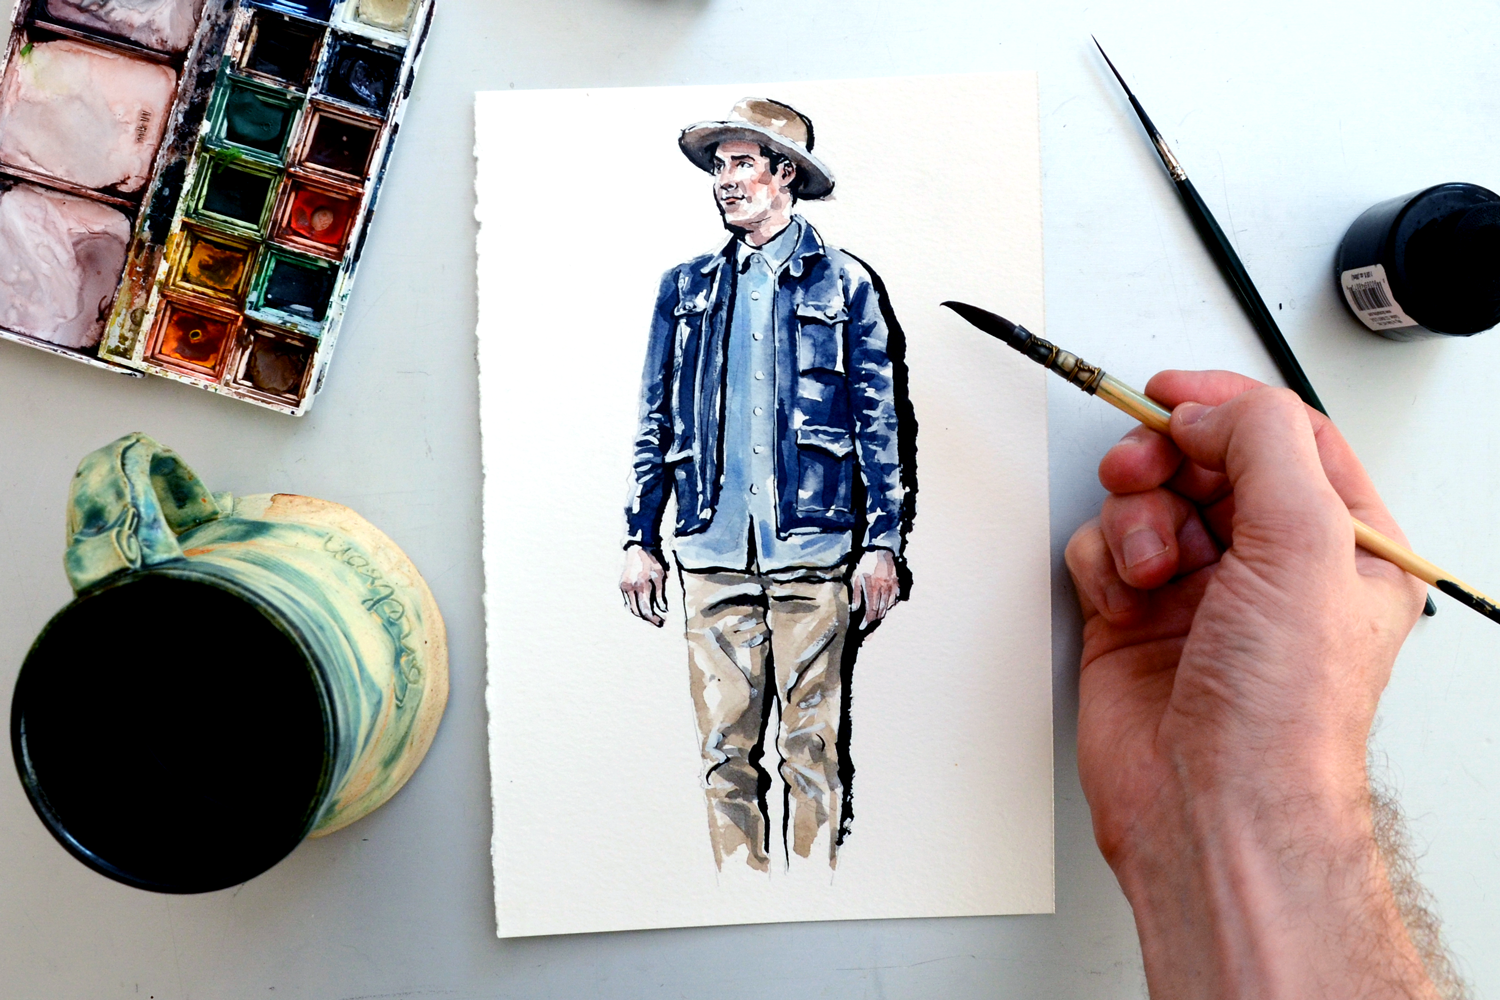 Painting Clay Chambers wearing Grayers Clothing